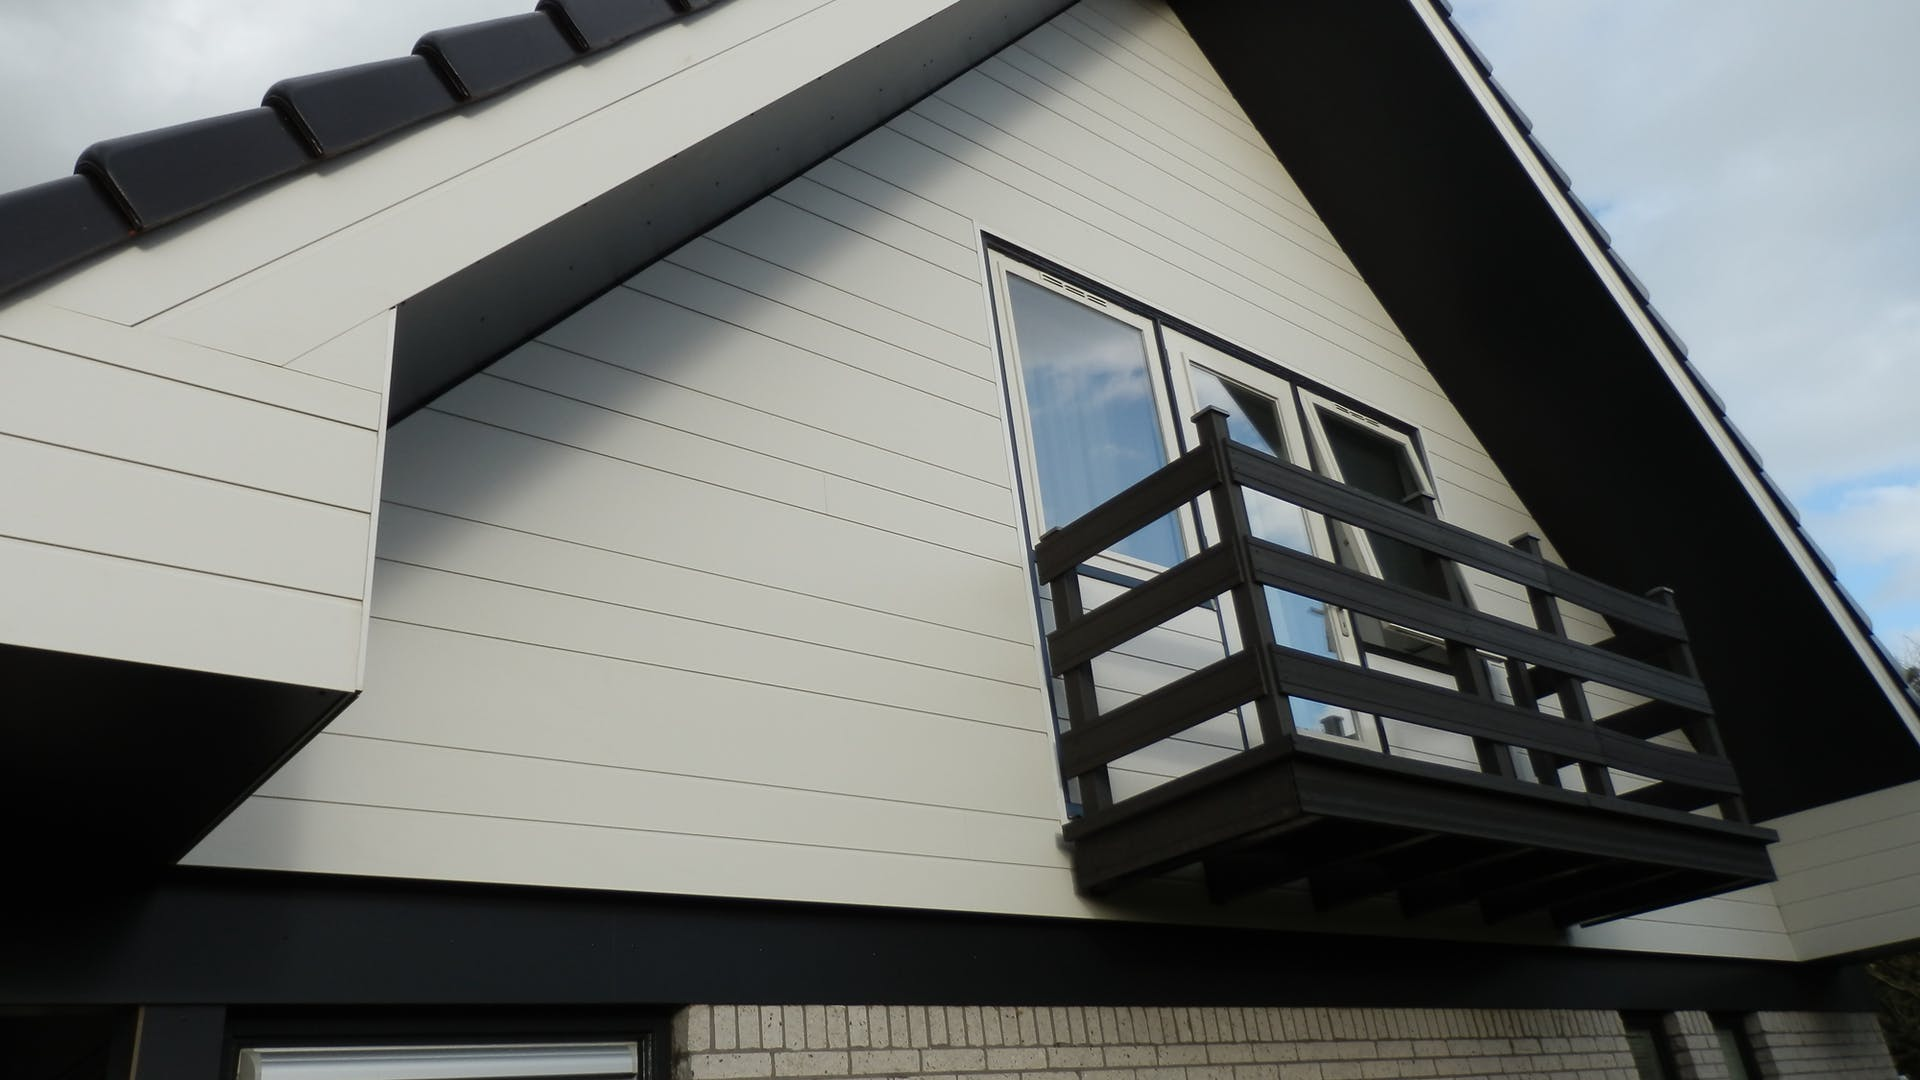 Renovation of Single Family House with Rockpanel Lines2 in Menaldum, The Netherlands